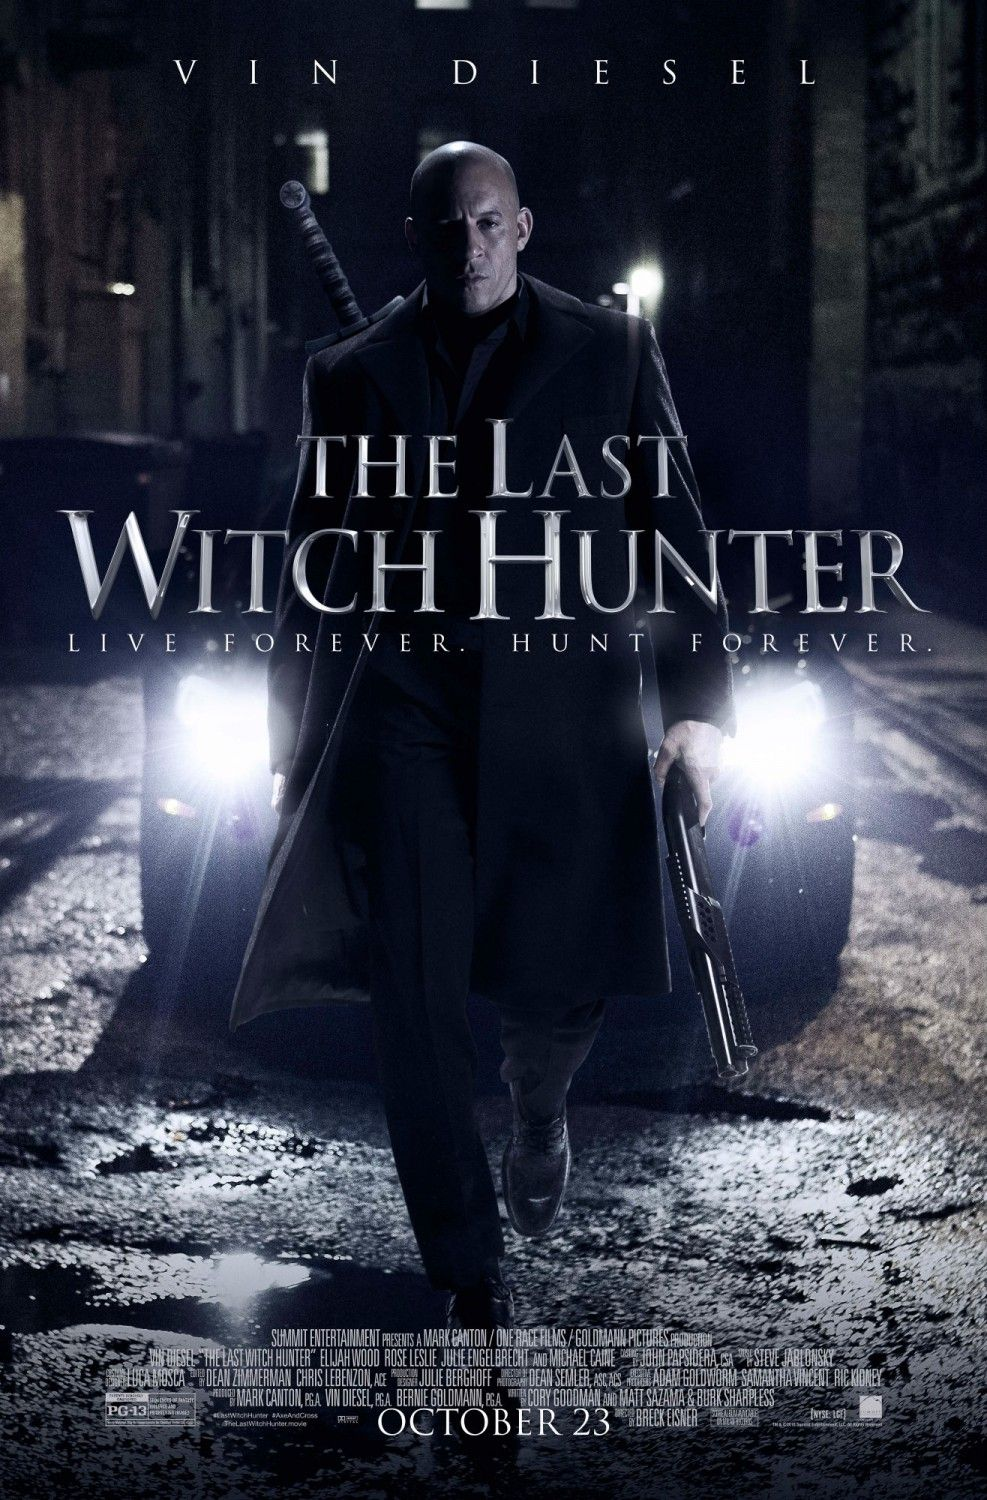 The Last Witch Hunter Extra Large Movie Poster Image Internet Movie Poster Awards Gallery The Last Witch Hunter The Last Witch Hunter Movie